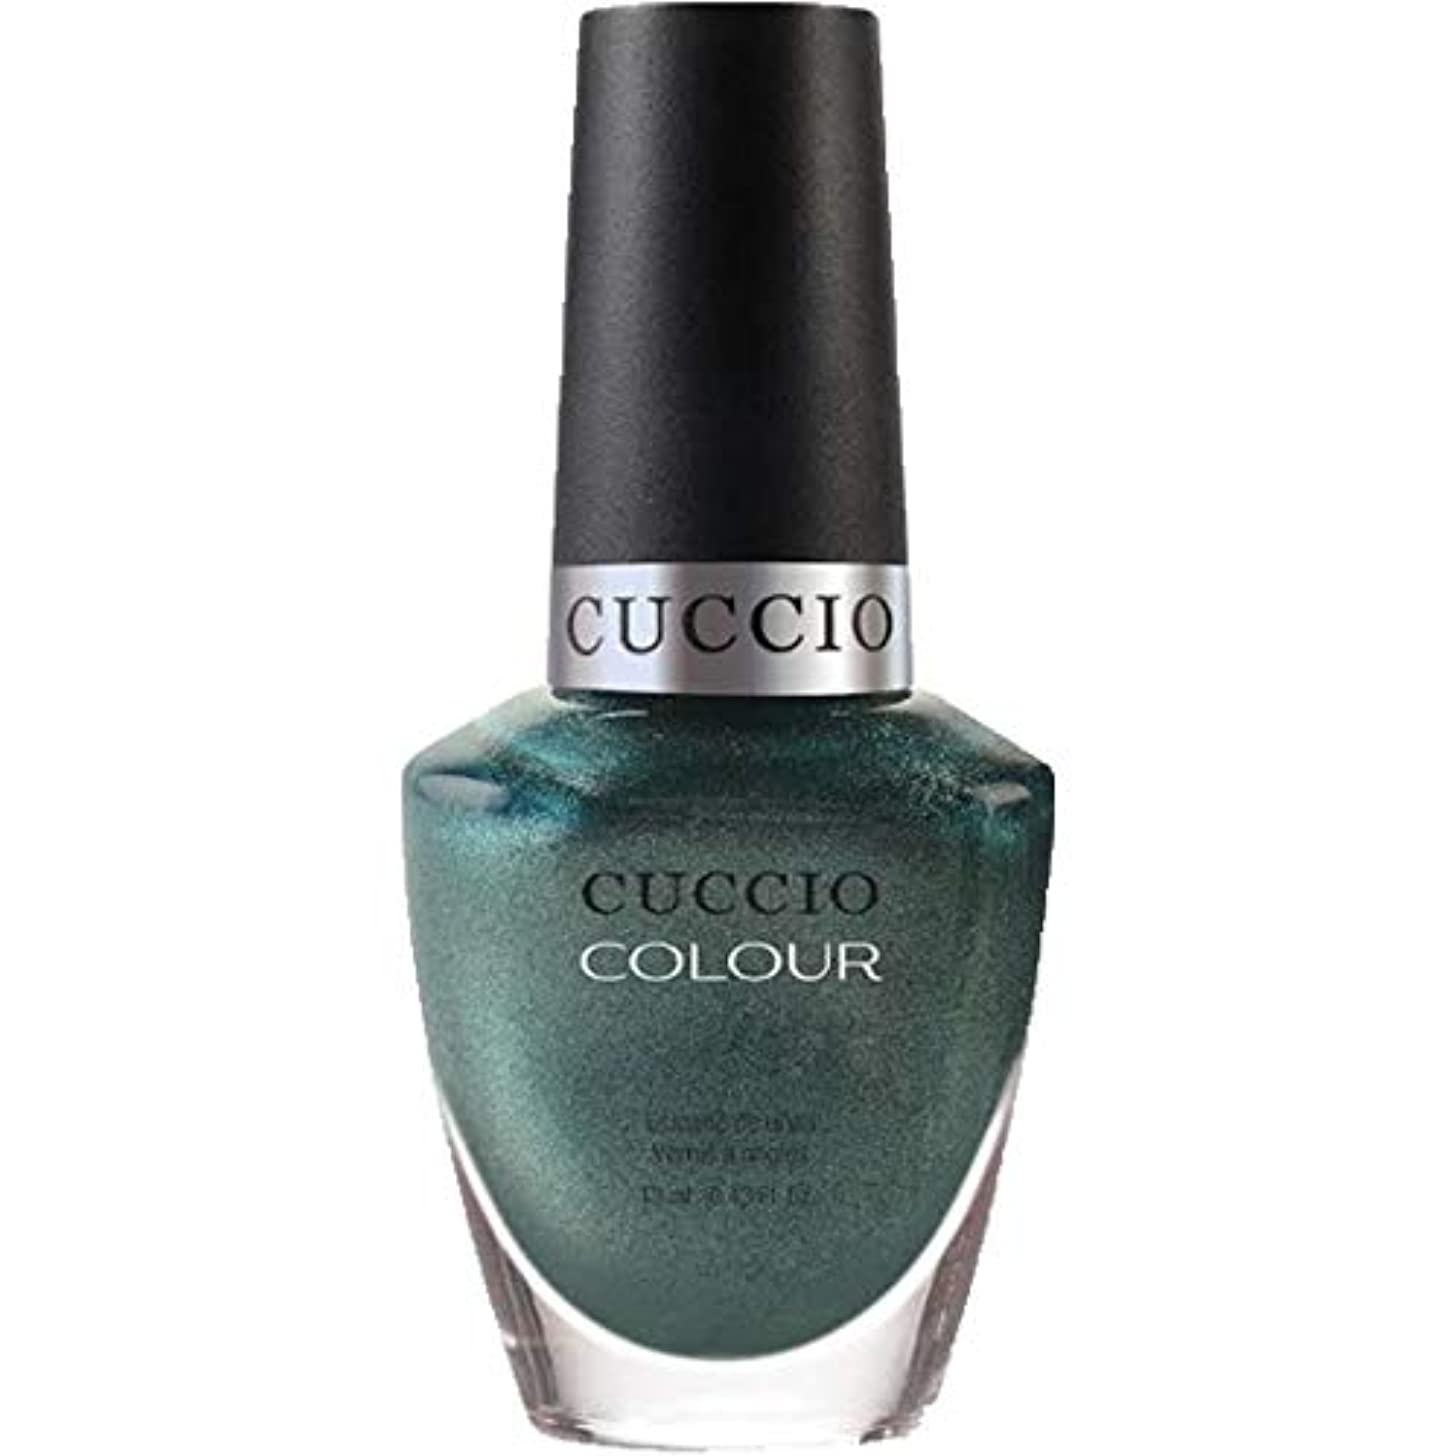 Cuccio Colour Gloss Lacquer - Notorious - 0.43oz / 13ml